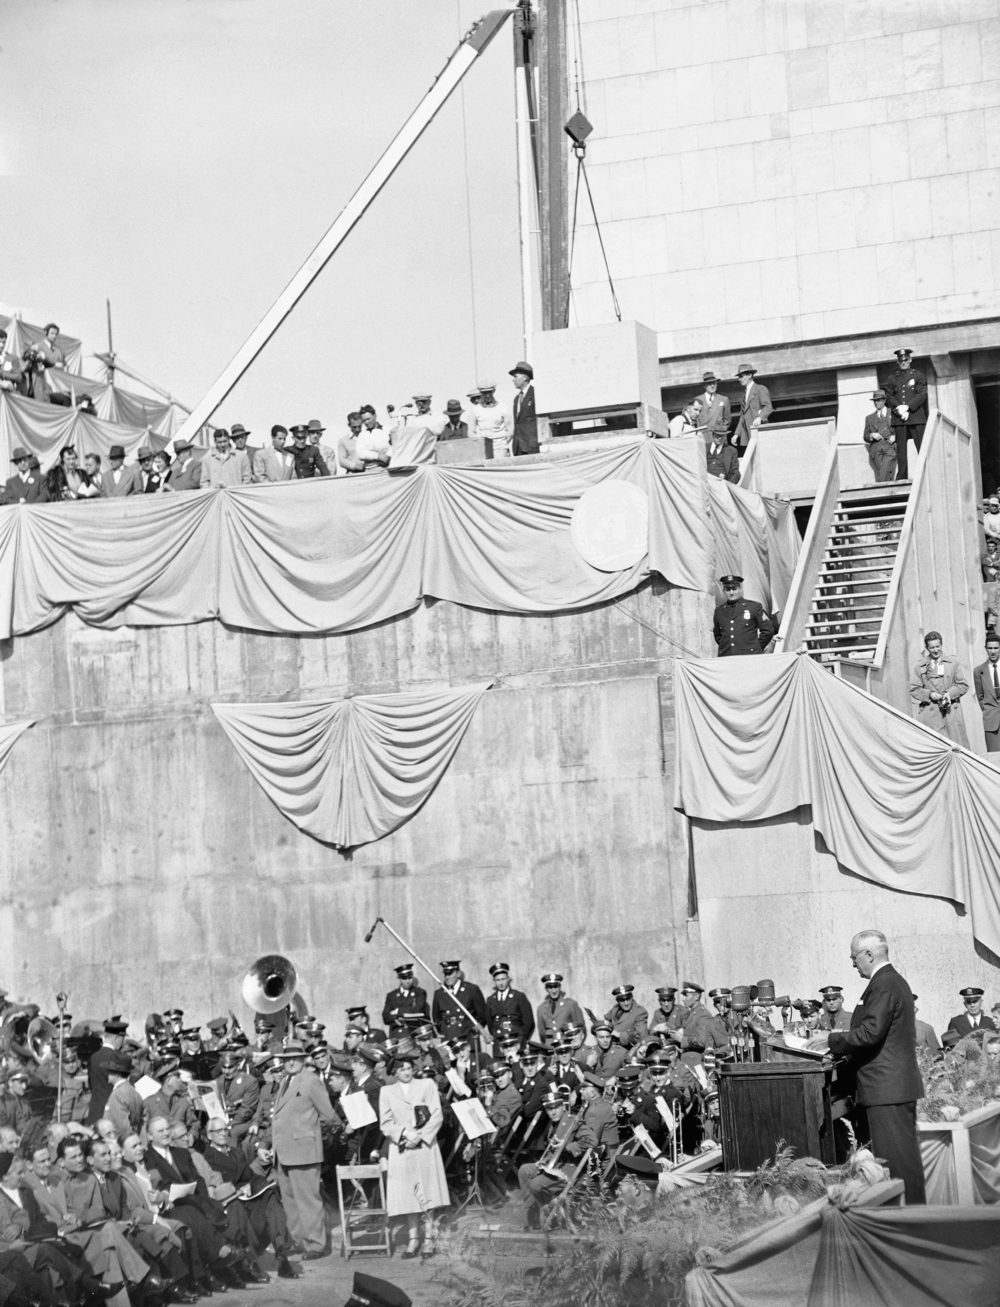 President Harry S. Truman (right), delivers a foreign policy speech at the cornerstone laying ceremony for the United Nations permanent headquarters on Oct. 24, 1949 in New York City.   High above musicians is the cornerstone which was lowered into place over a receptacle containing a copy of the U.N. charter and the U.N. declaration of human rights. (AP)